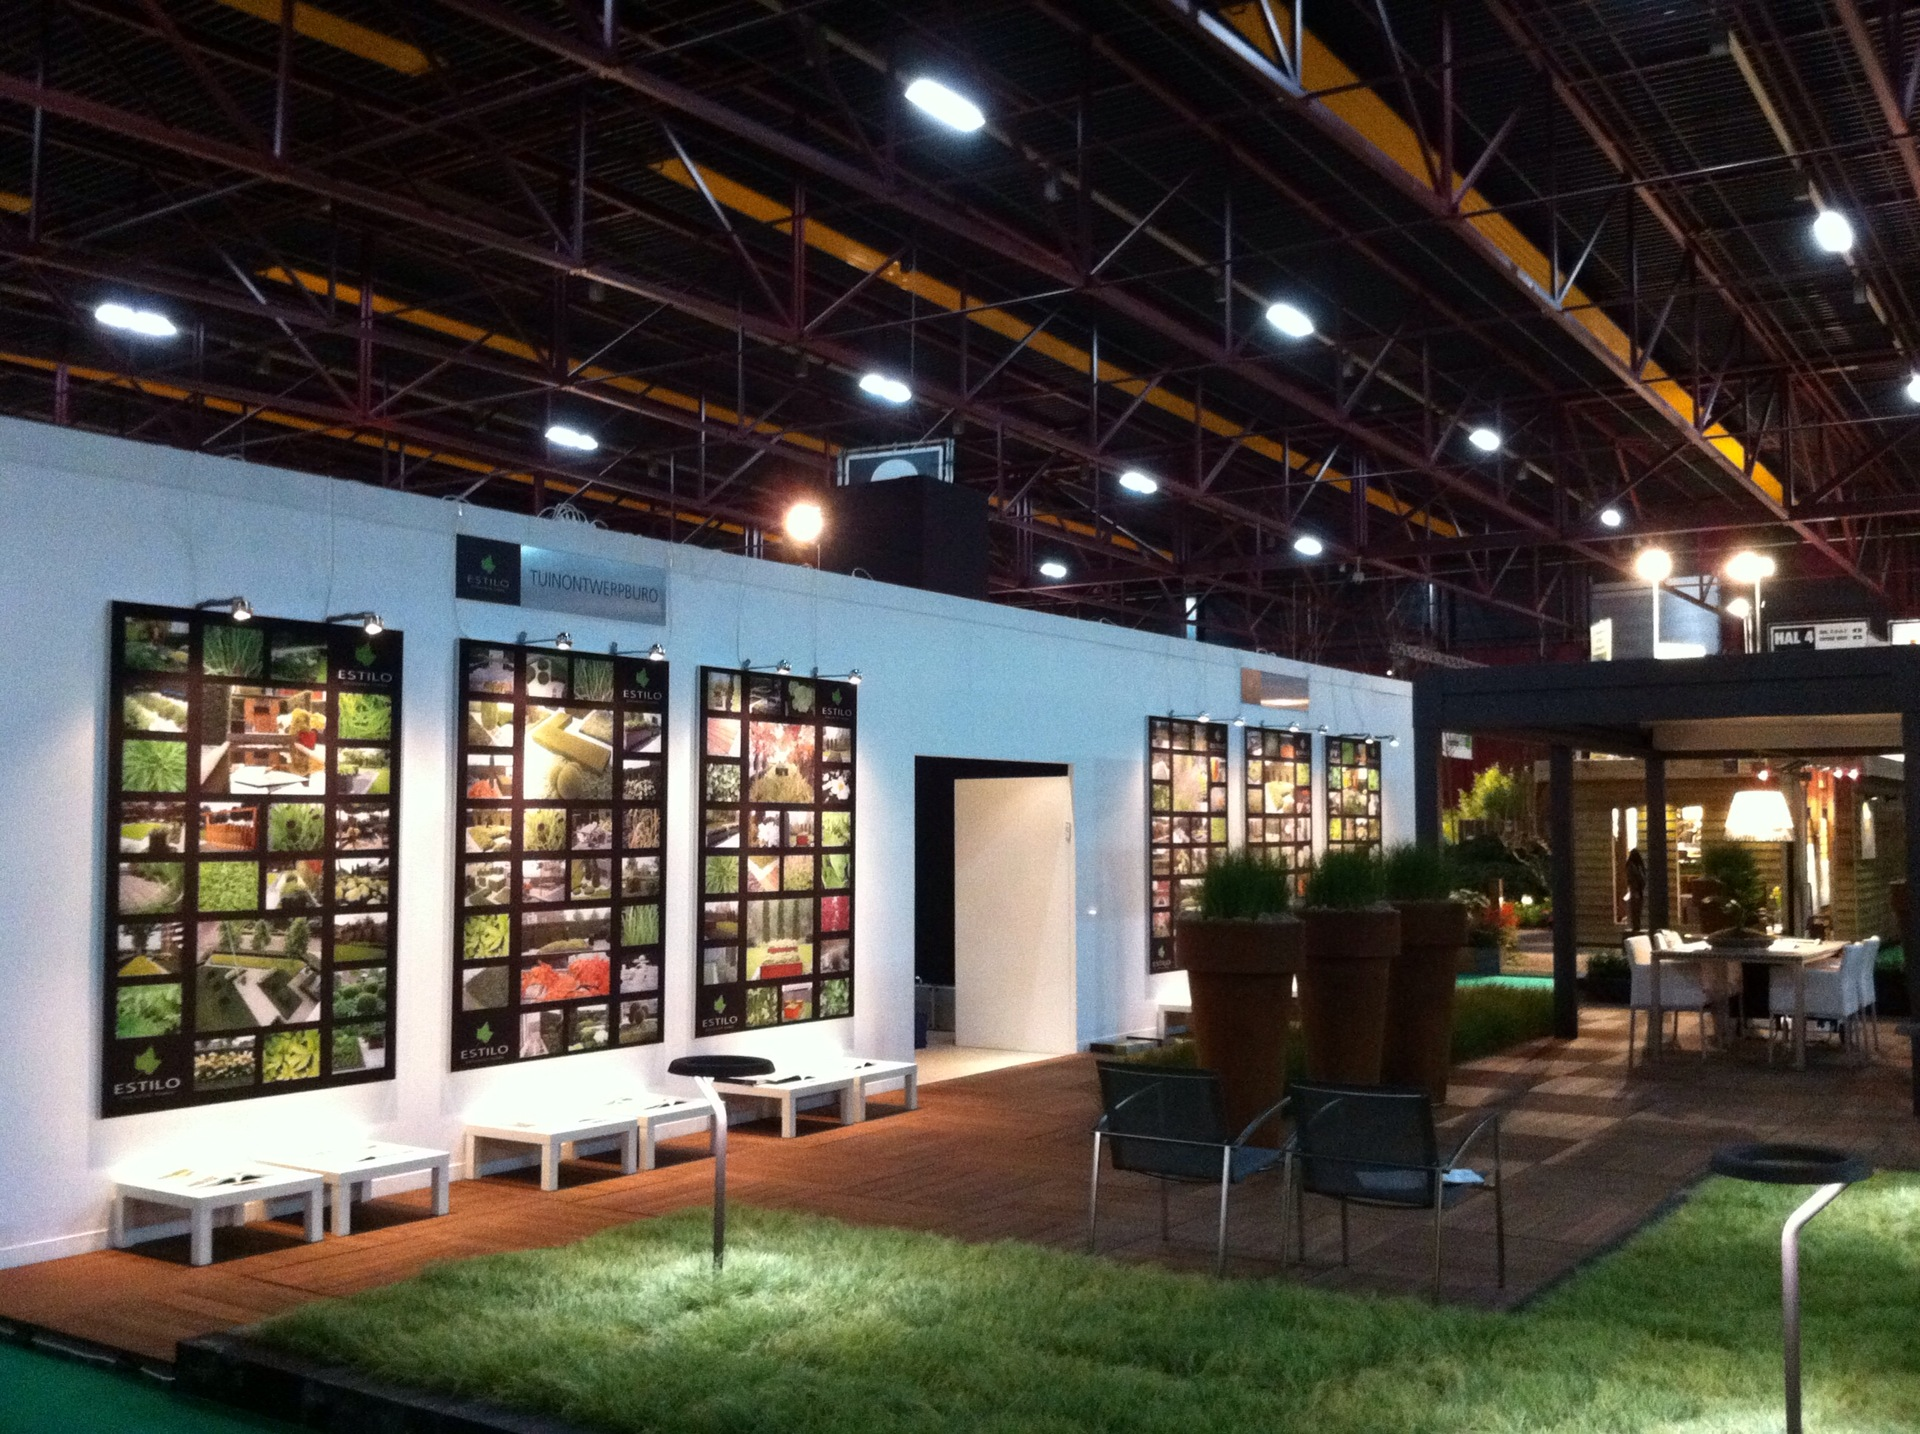 Huis_Tuin_2012 stand